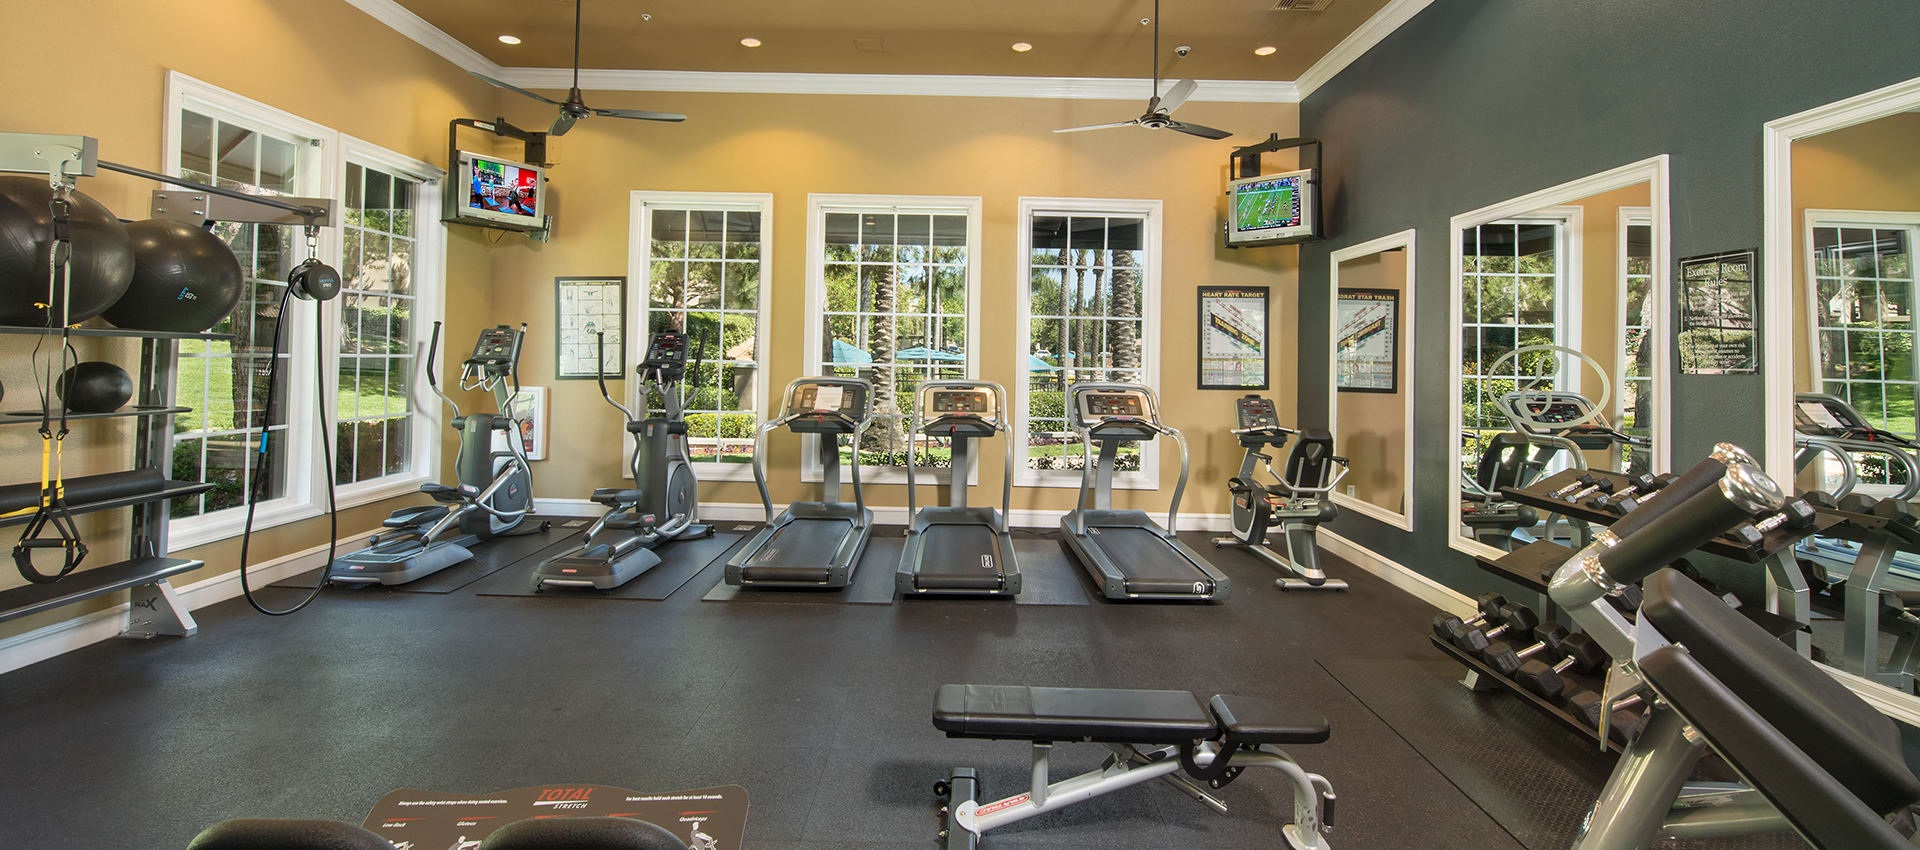 24 Hour Fitness Center at Esplanade Apartment Homes in Riverside, California